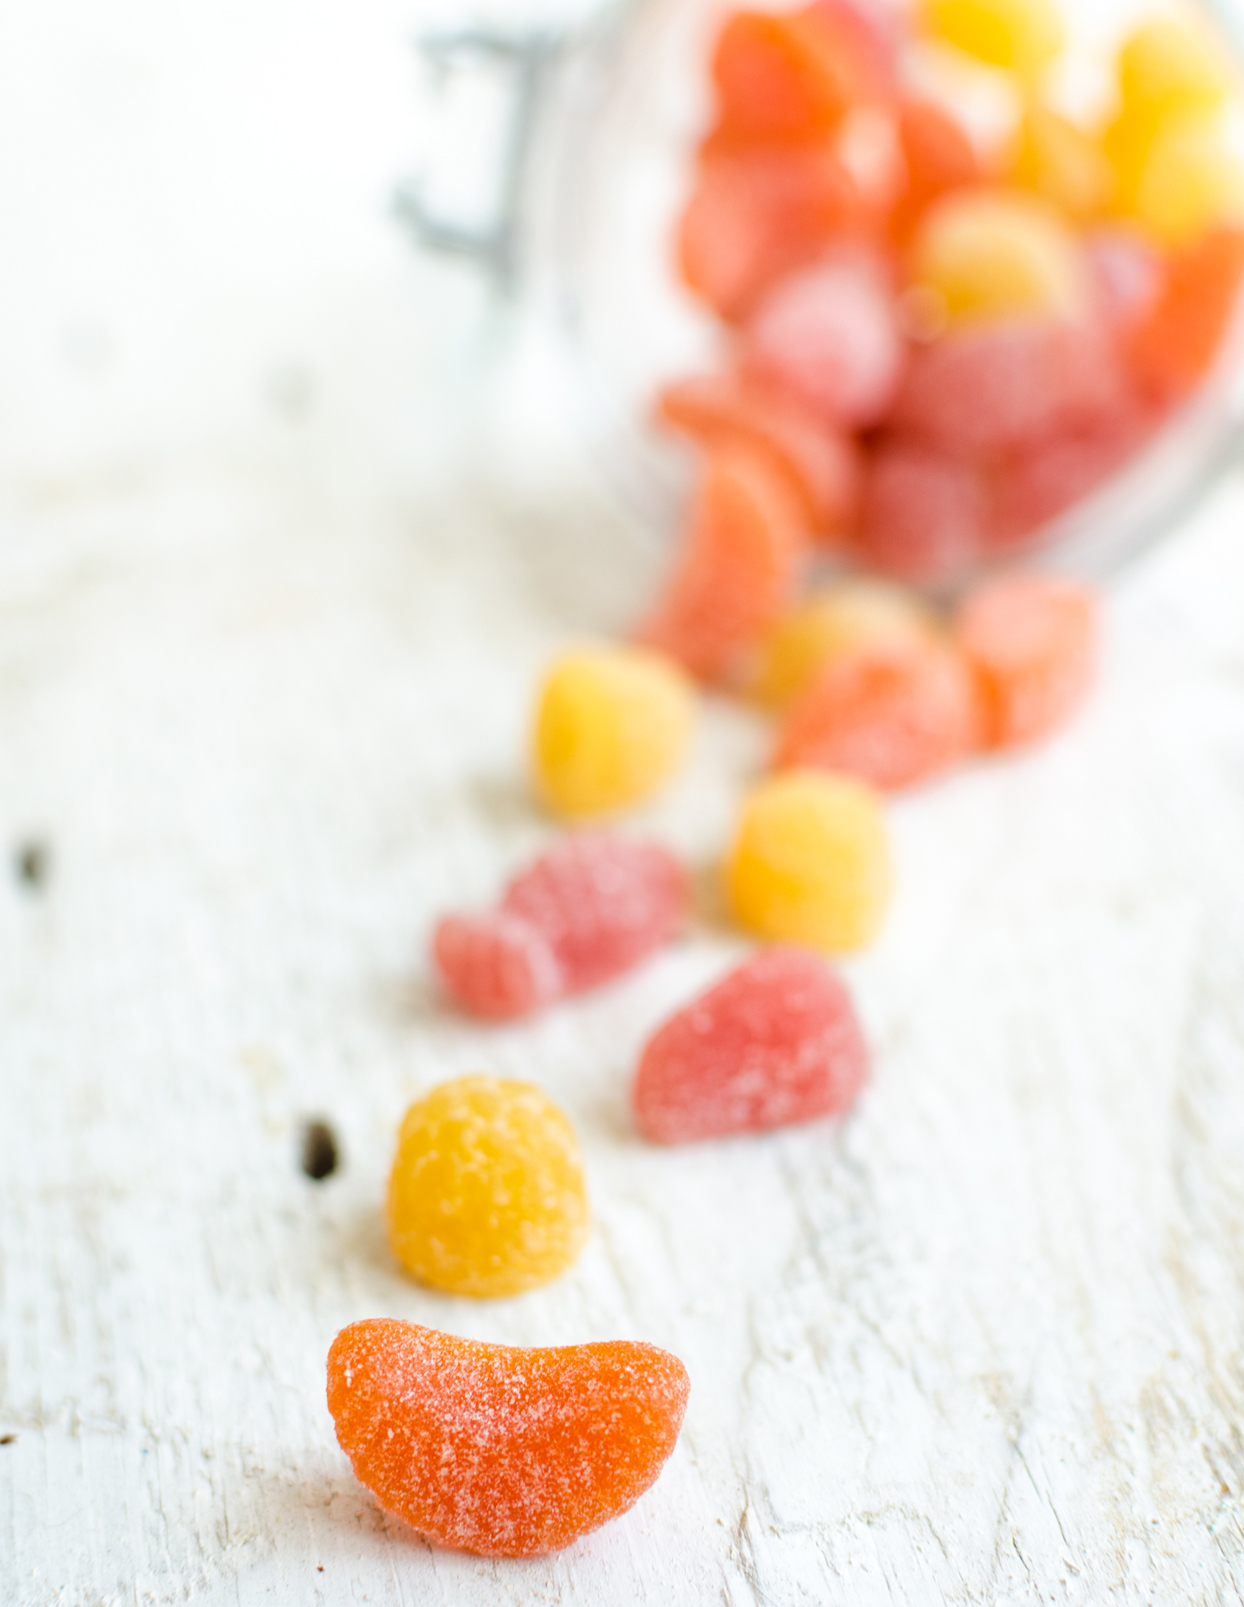 red, yellow and orange gummy vitamins pouring out of a glass jar on a white wooden background